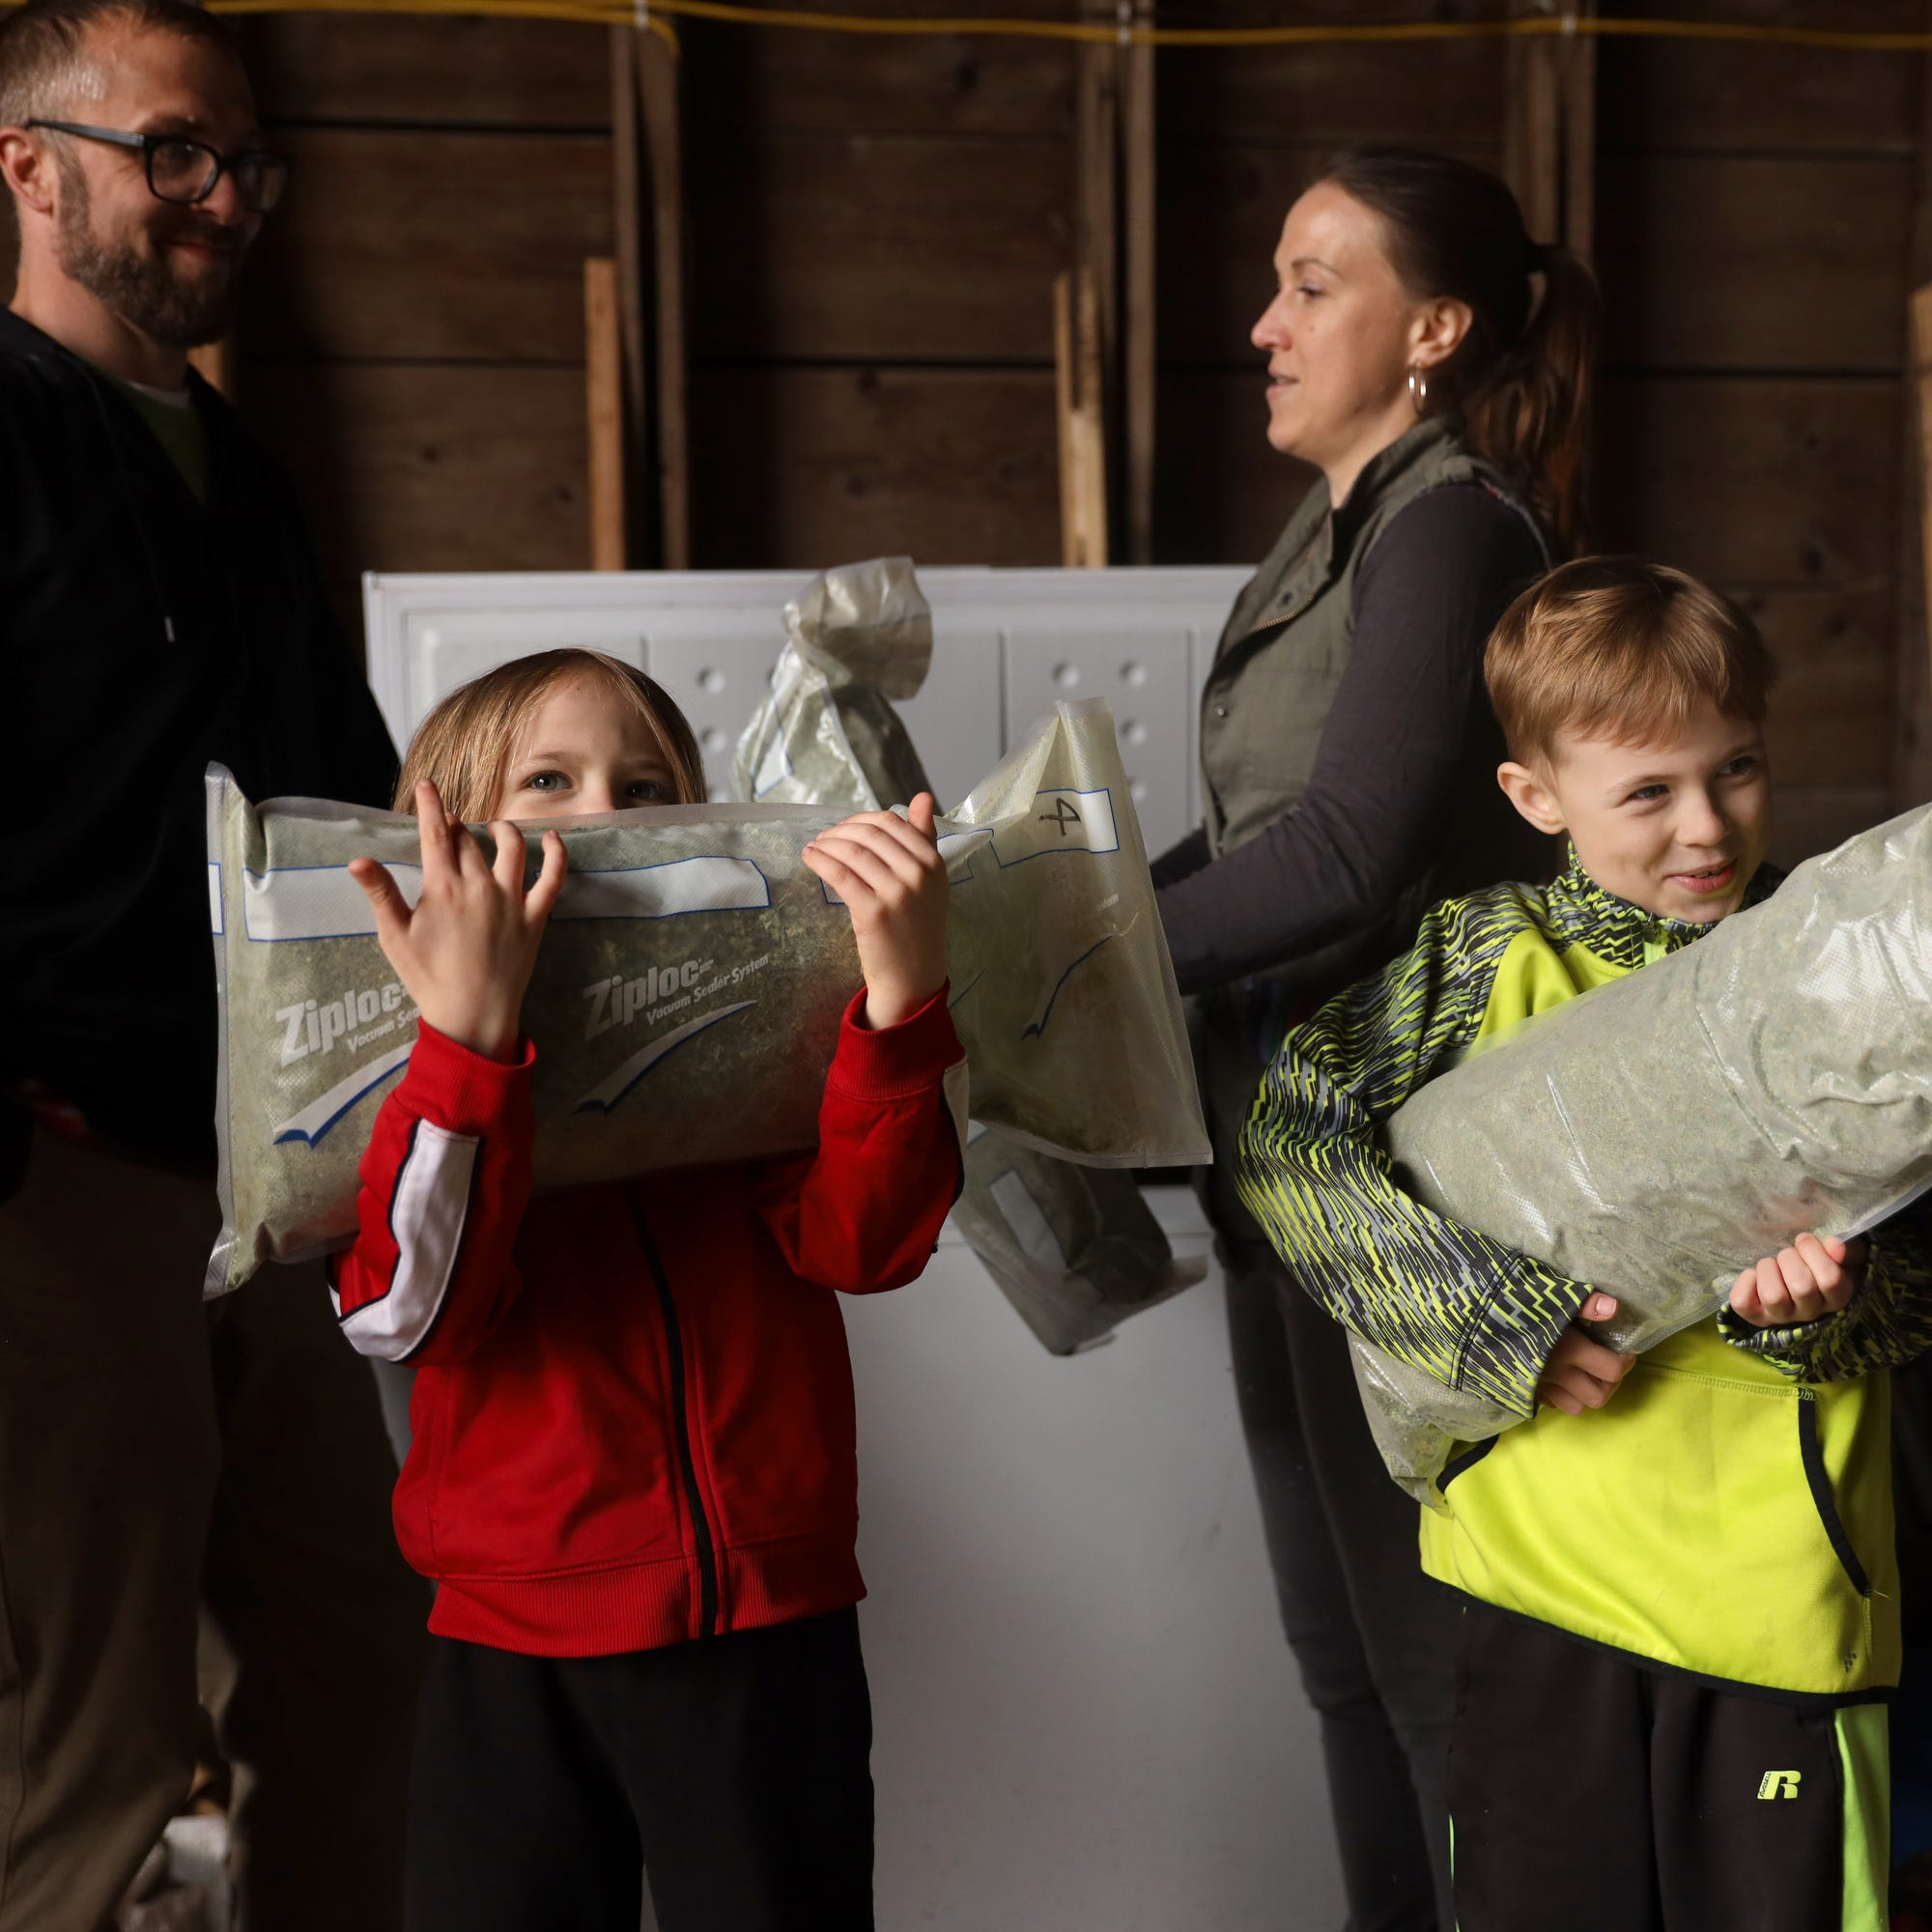 As Wisconsin's new hemp industry blooms, will marijuana be far behind?